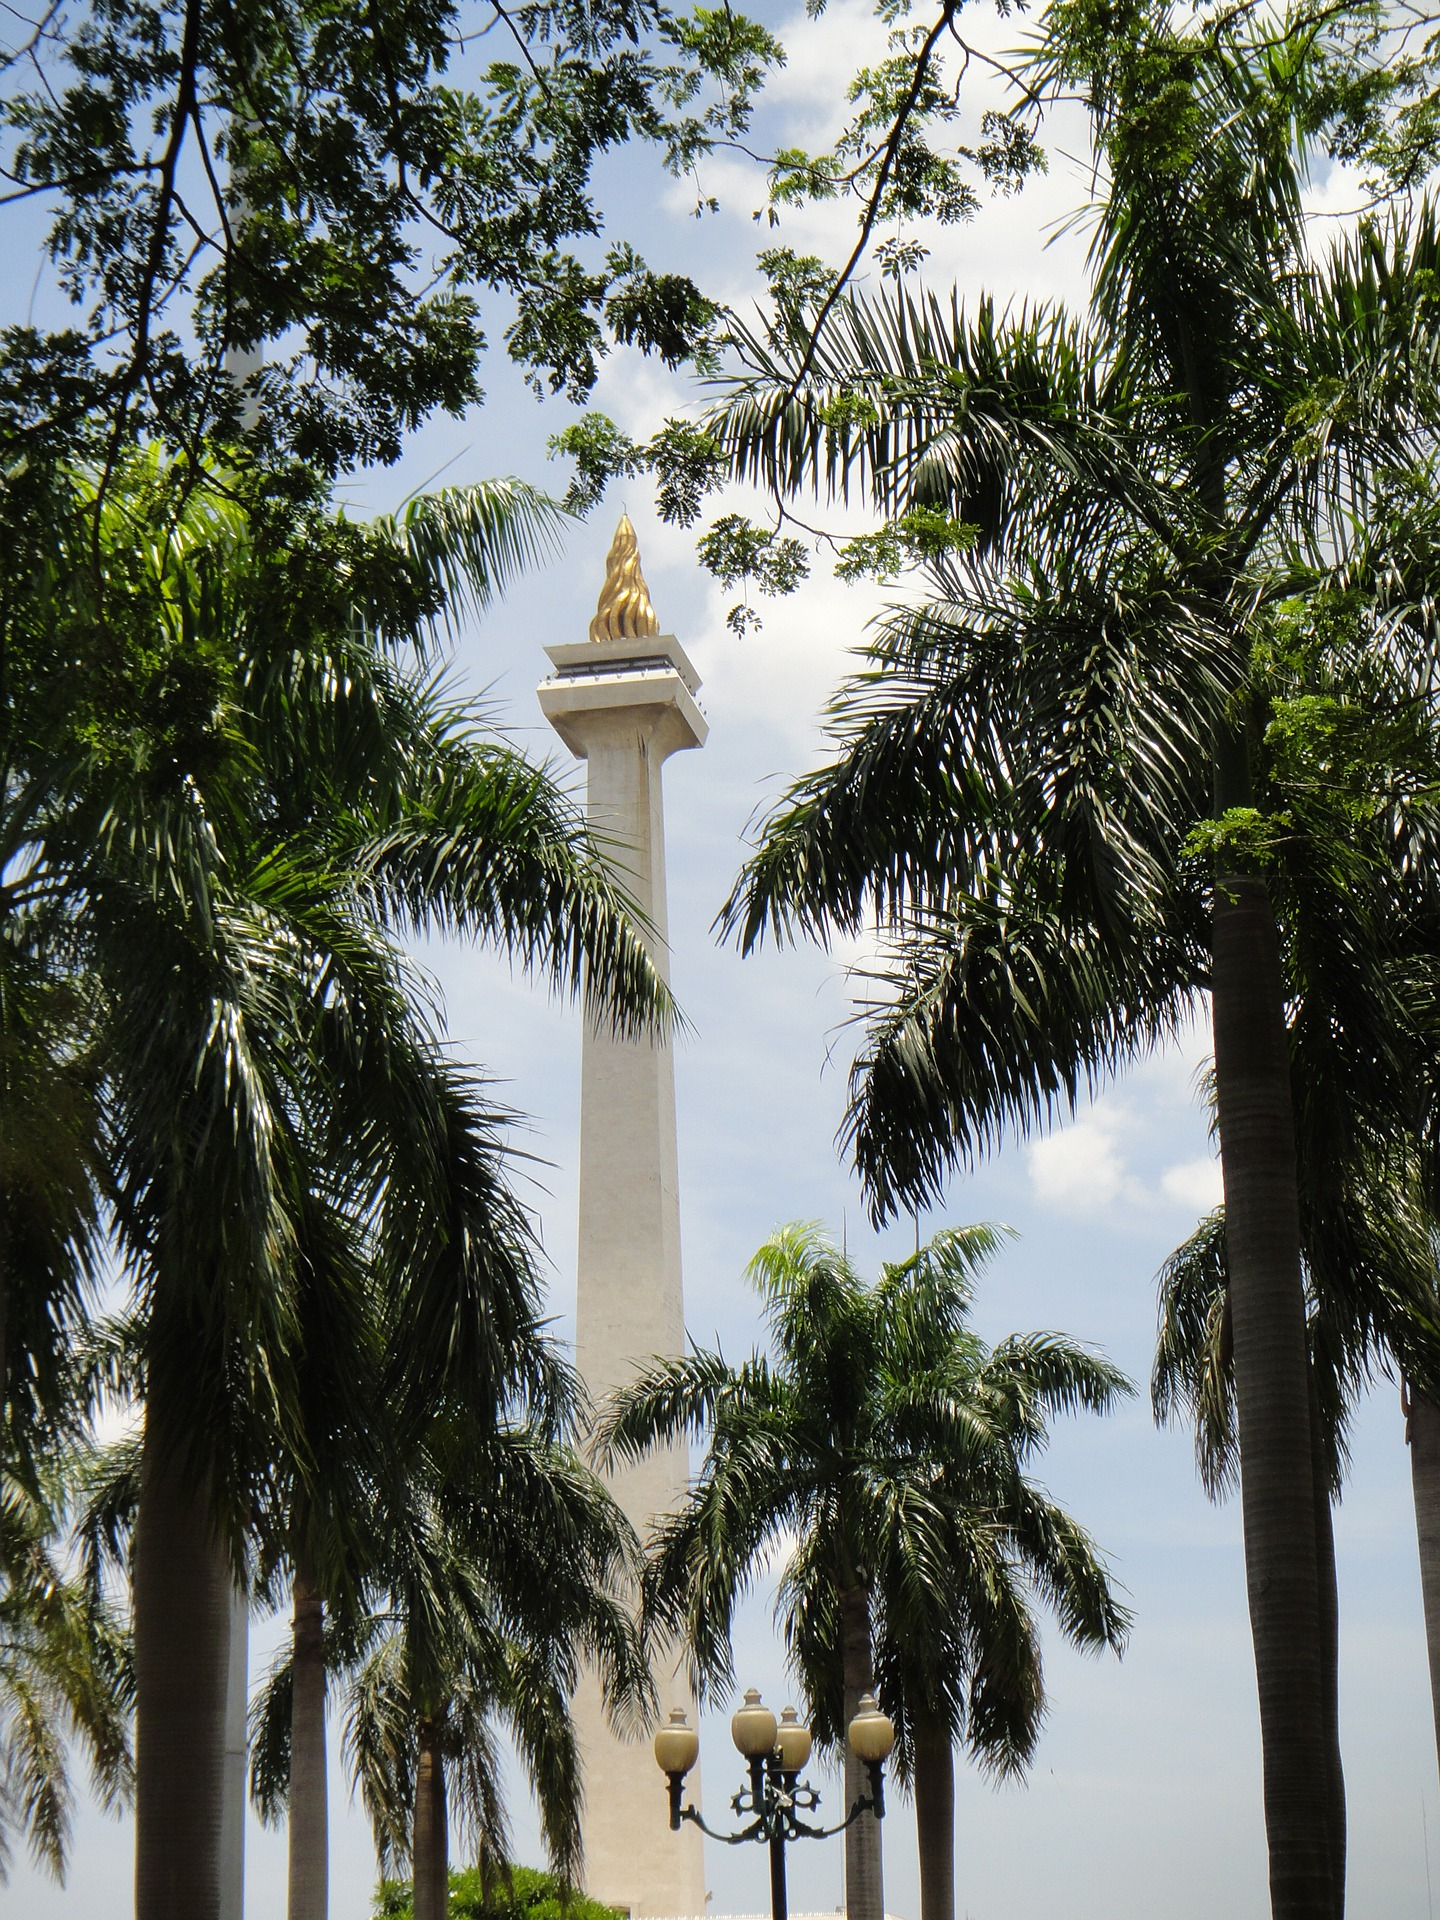 National Monument in the centre of Merdeka Square, Central Jakarta, Indonesia